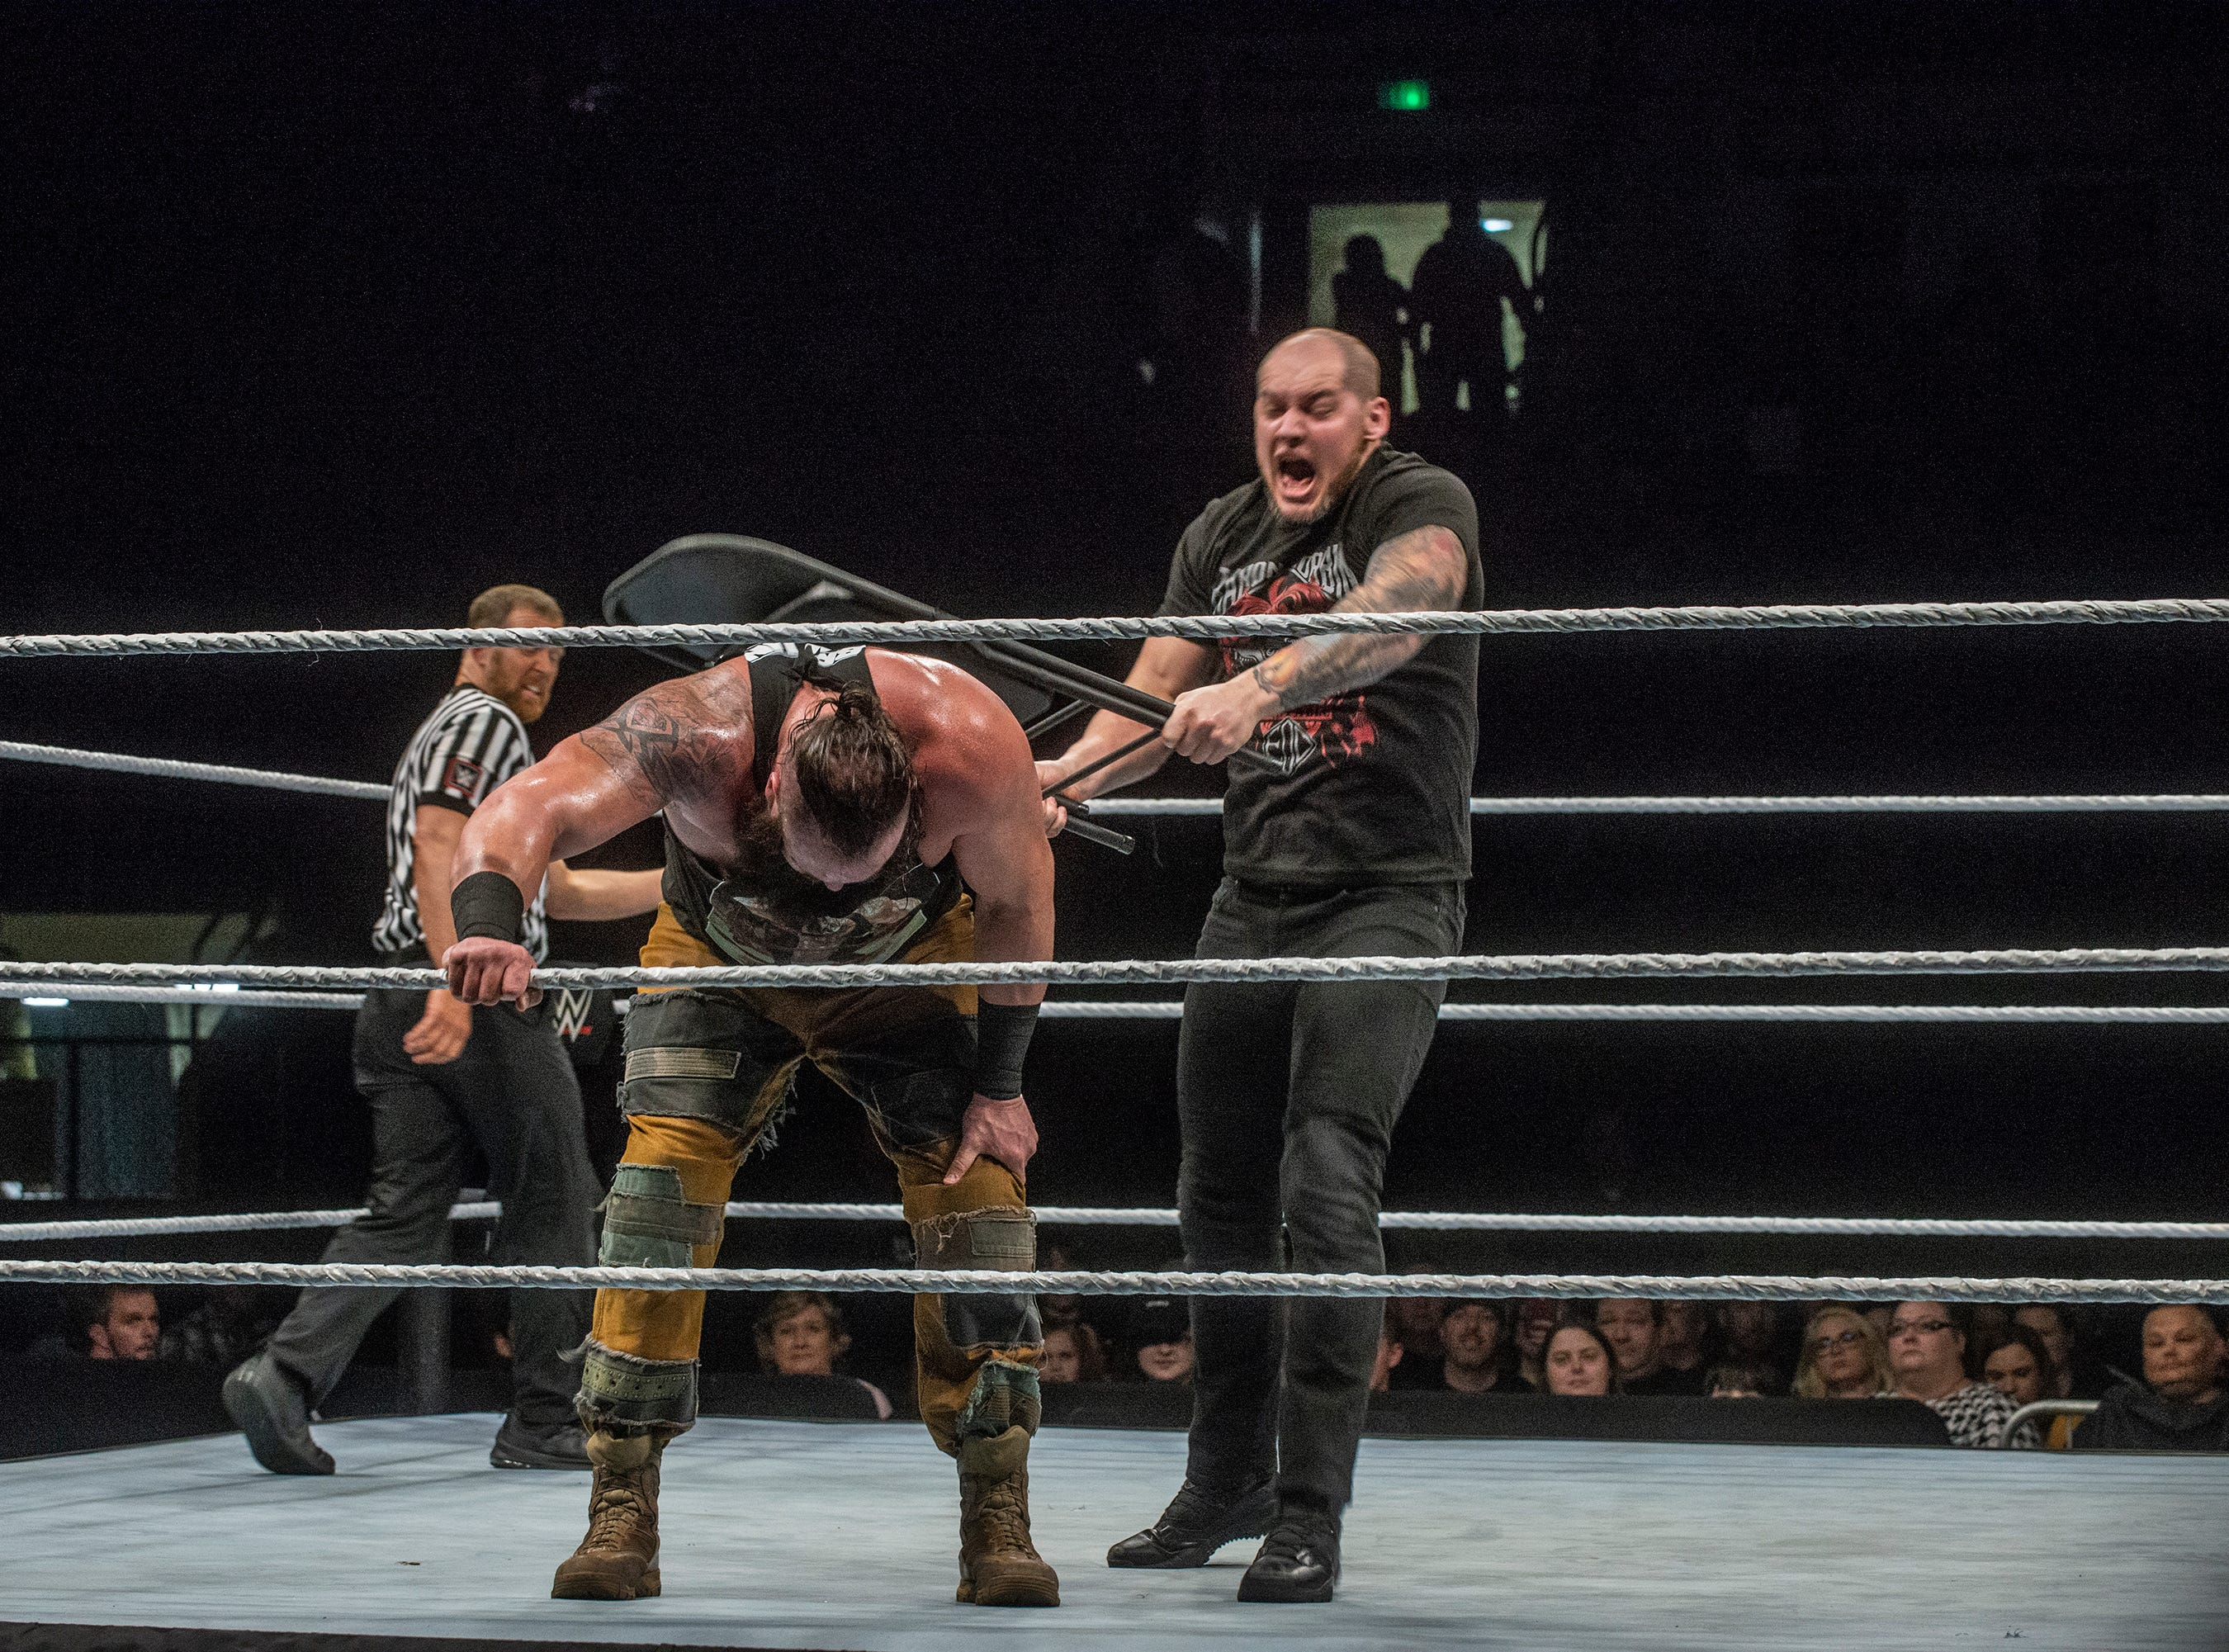 Baron Corbin hits Braun Strowman in the back with a chair. The main event was a street fight between Baron Corbin and Braun Strowman, with lots of of chairs, sticks and tables. WWE Live Road to Wrestlemania came to Garrett Coliseum in Montgomery on Sunday, Feb. 24, 2019.